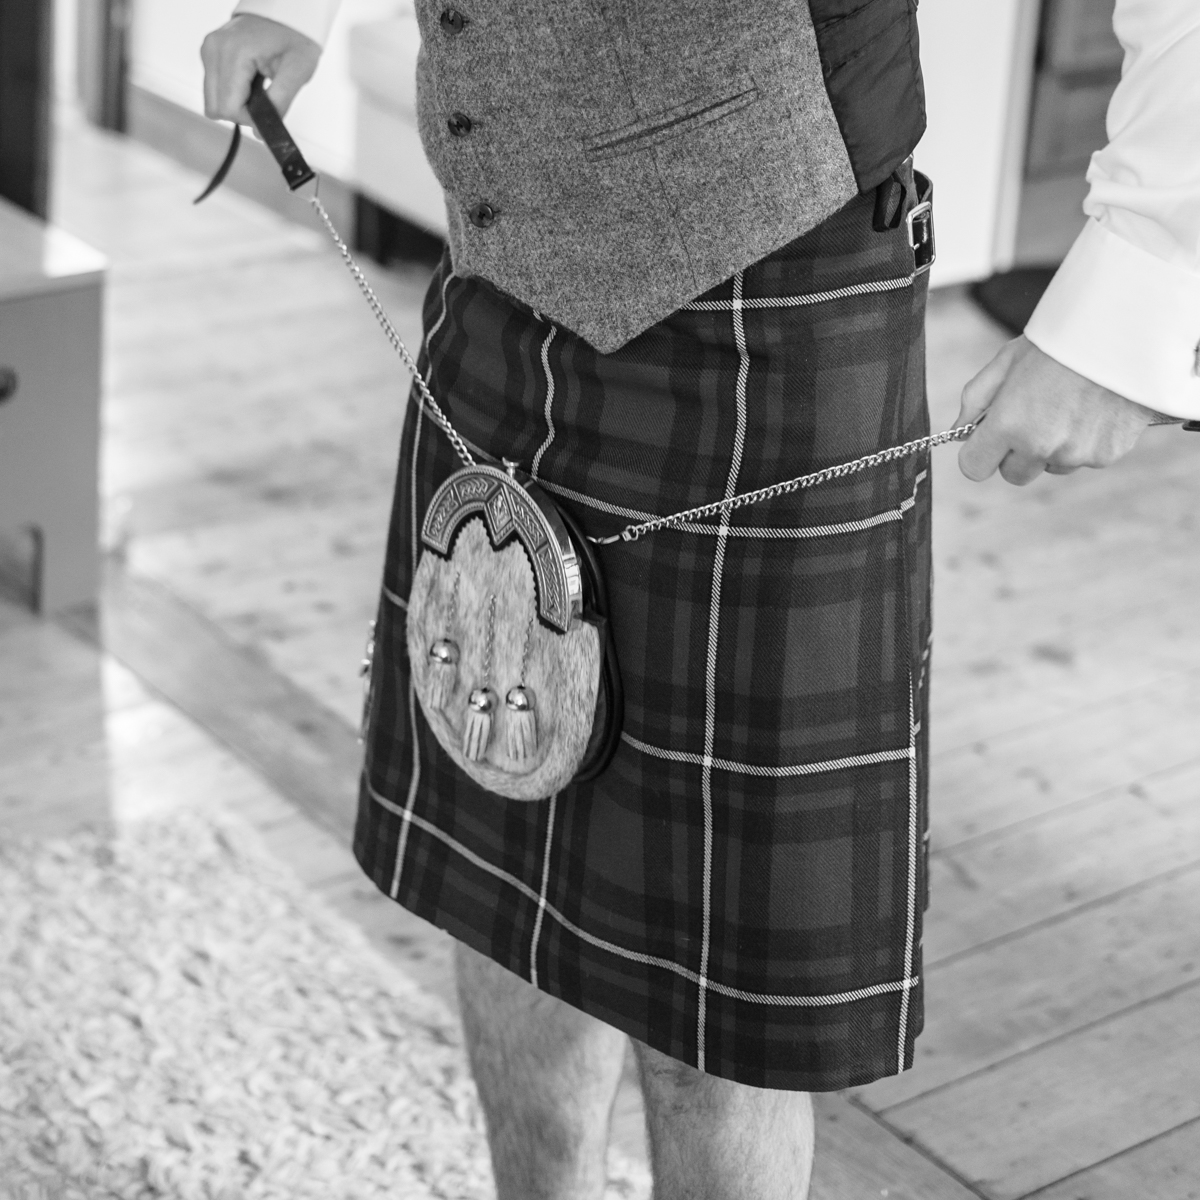 Kilt and Sporran by Edinburgh Wedding Photographer Ewan Mathers